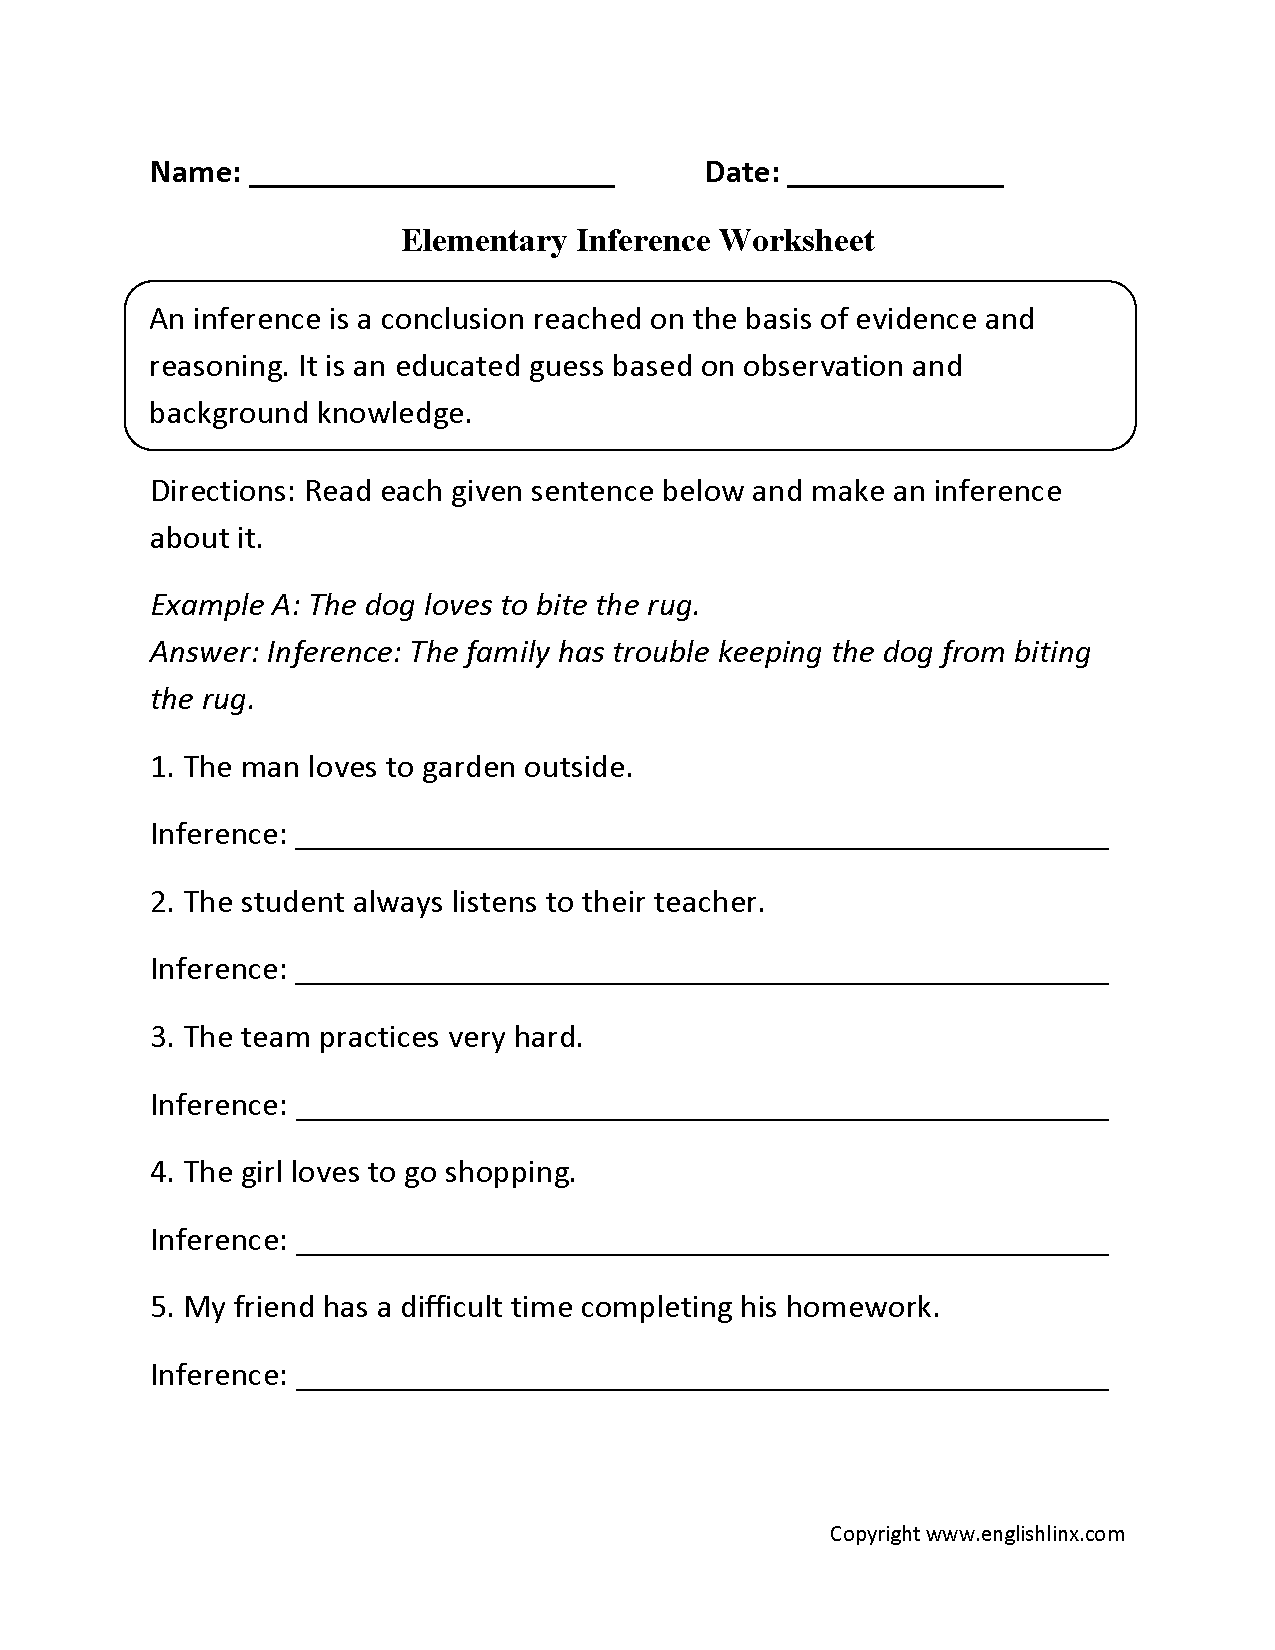 Reading Worksheets – Inference Worksheet 1